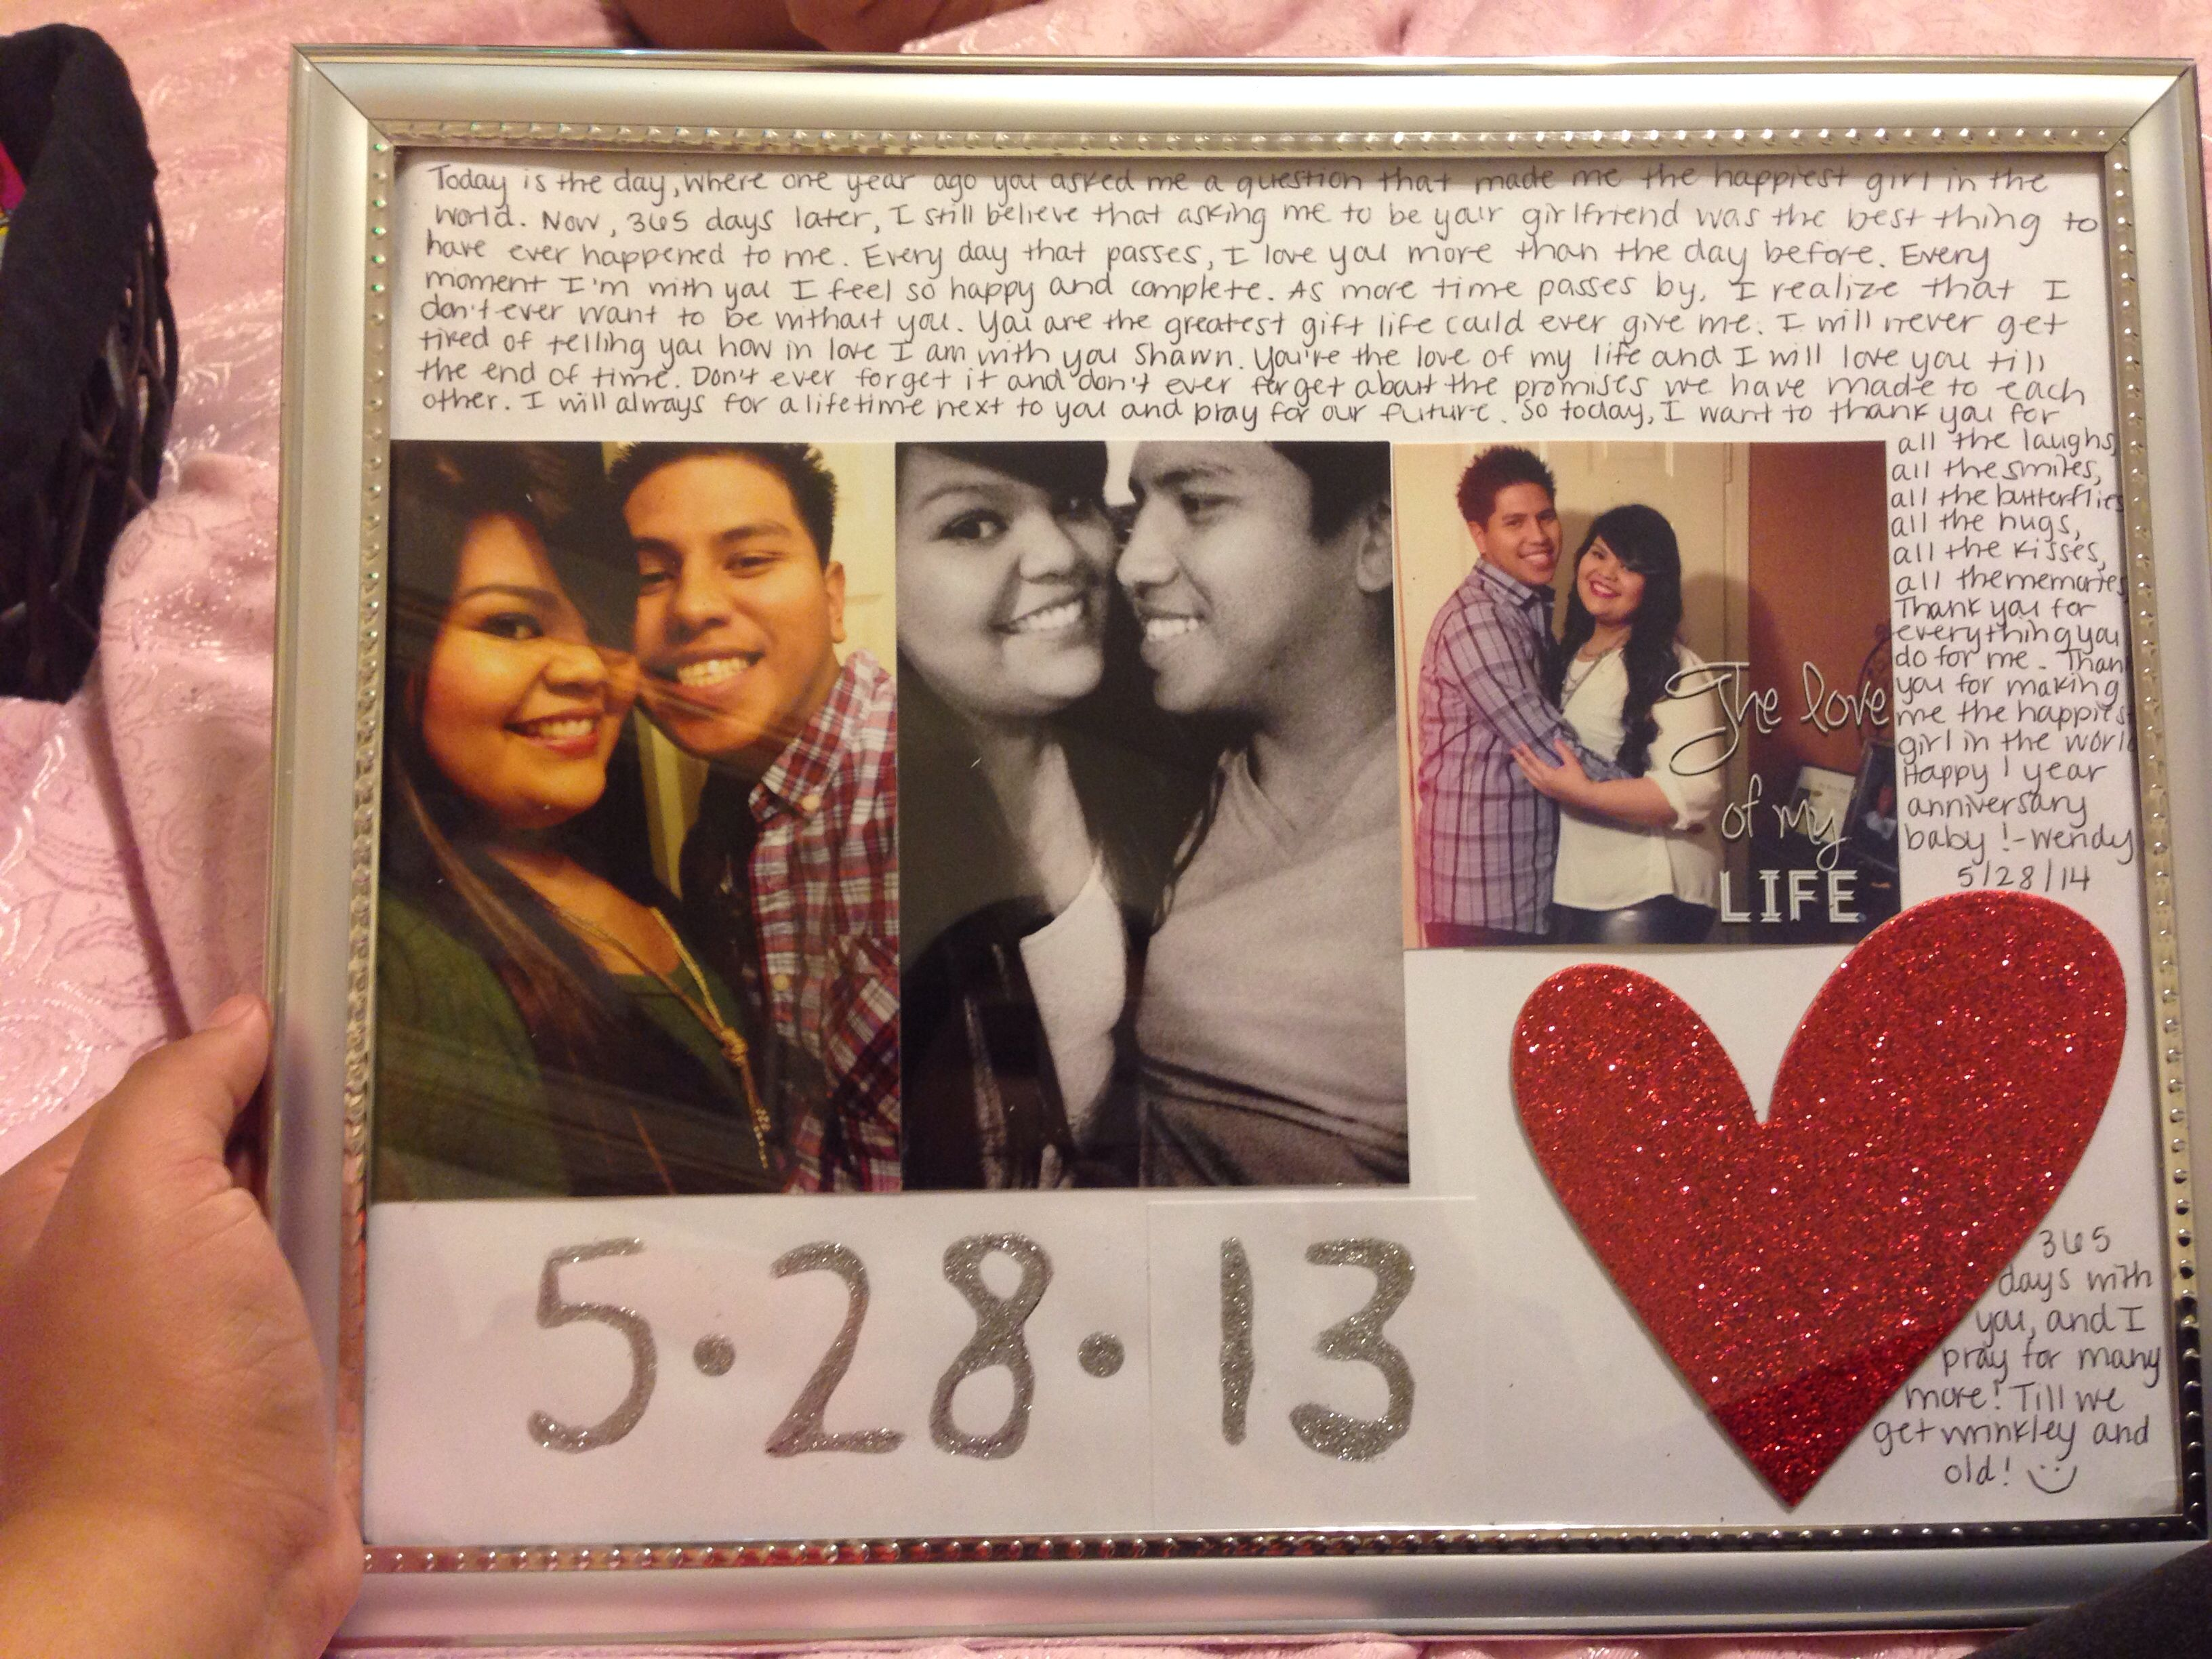 Gift For My Boyfriend For Our One Year Anniversary 5 28 13